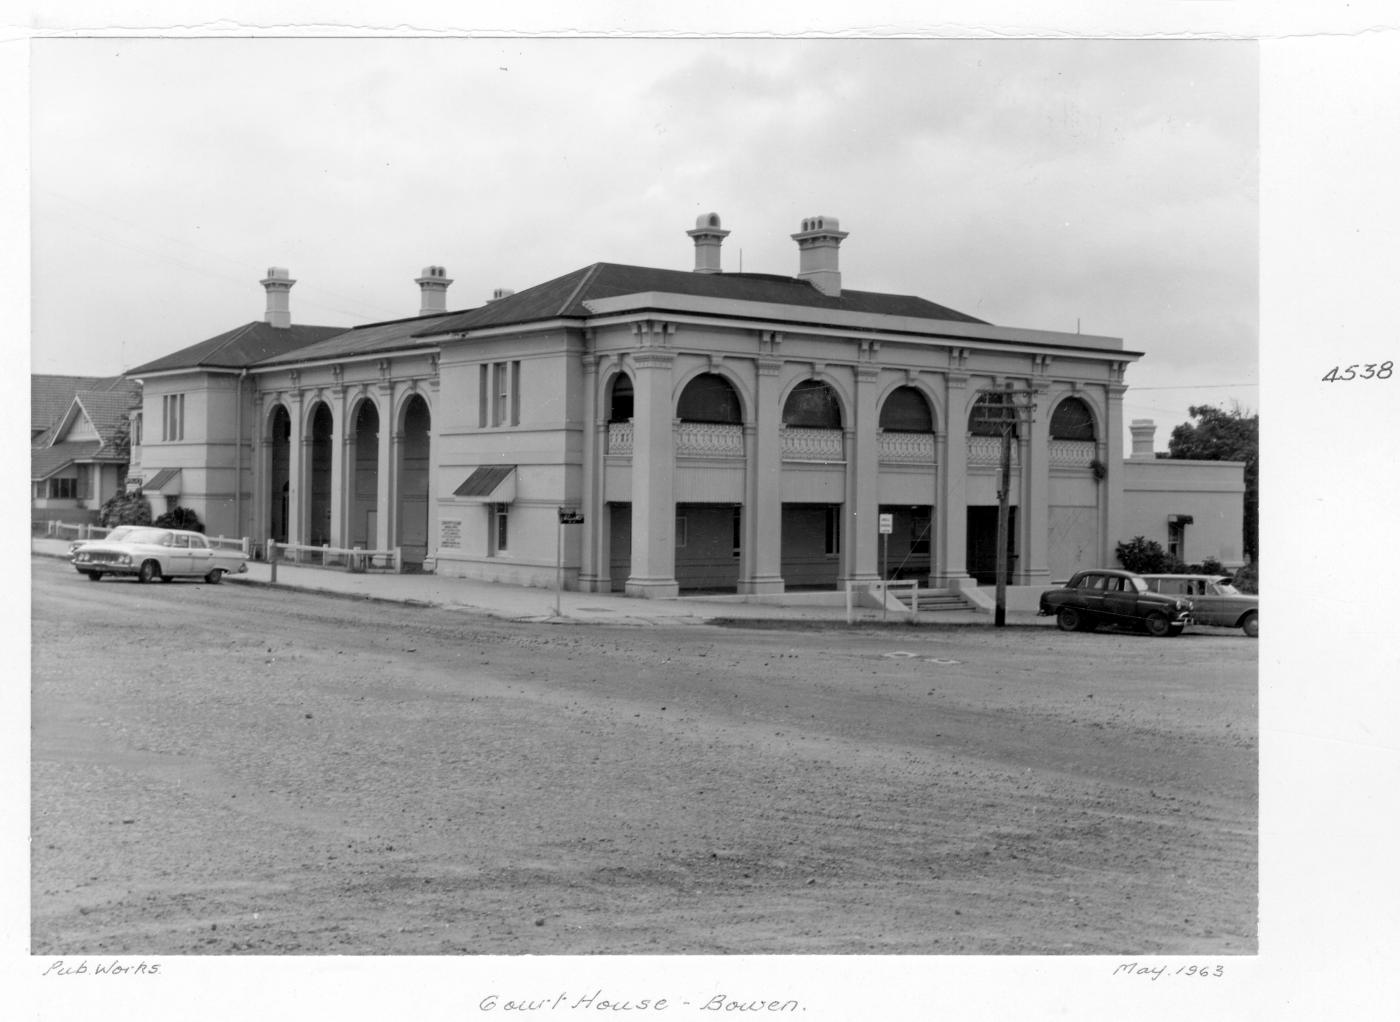 Court House, Bowen, May 1963